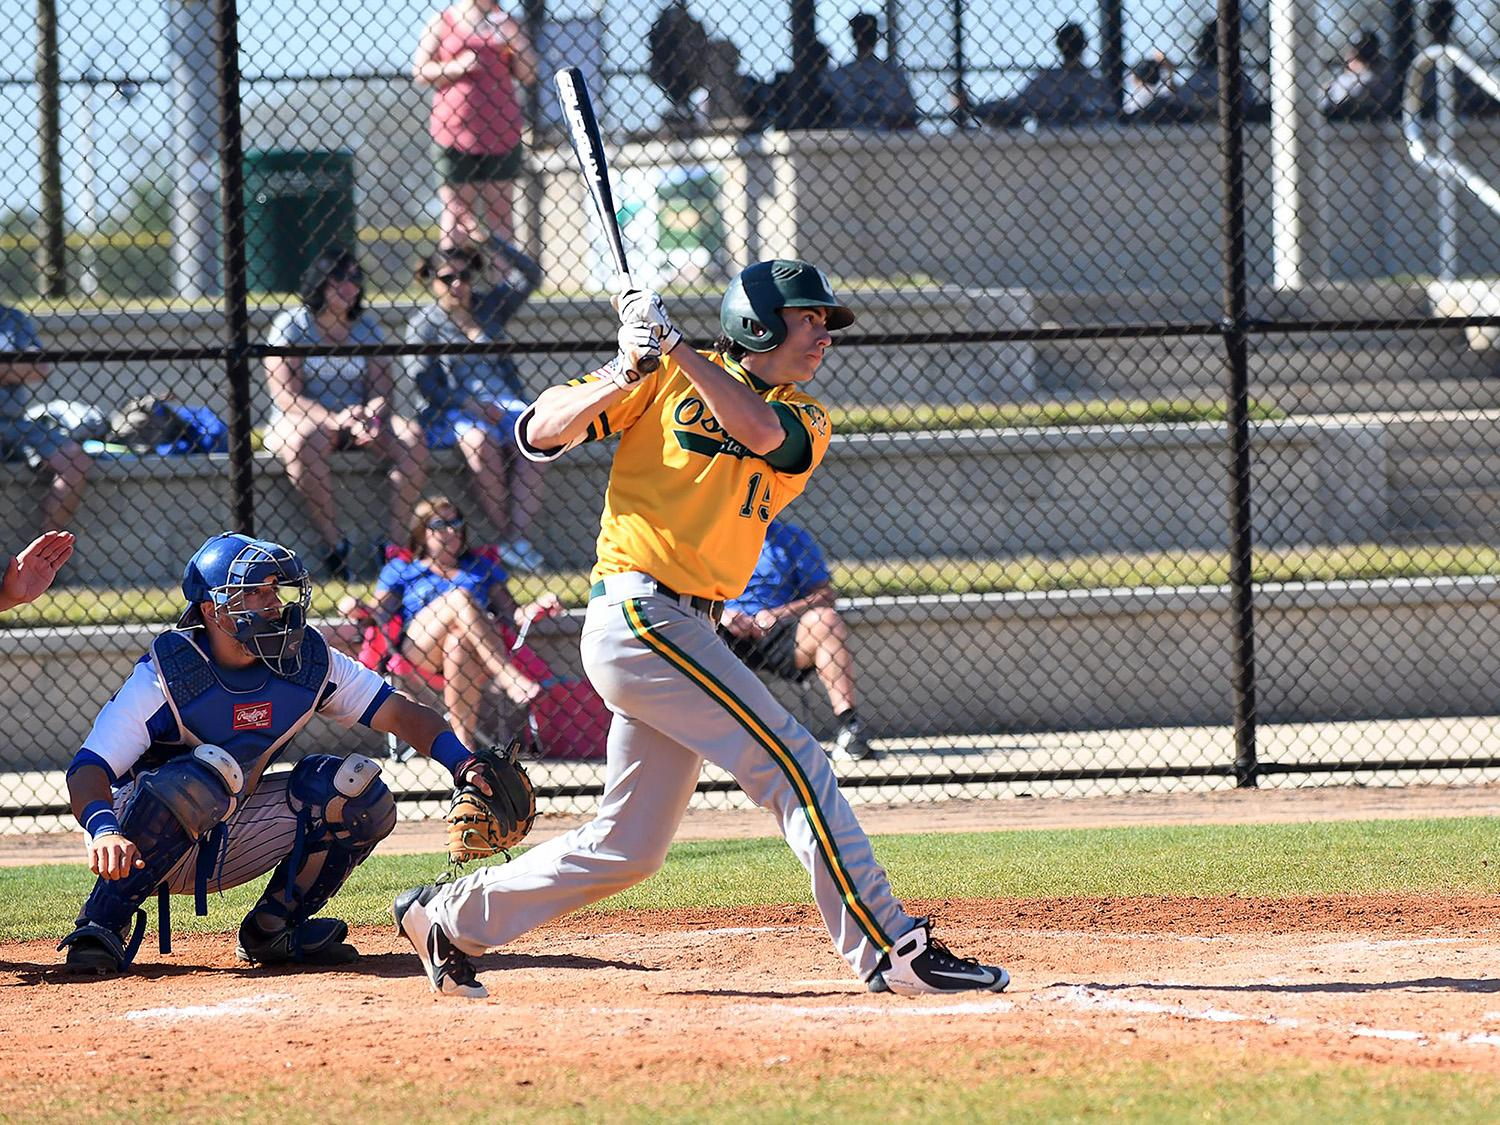 Laker baseball player Mike Dellicari raps out an extra-base hit